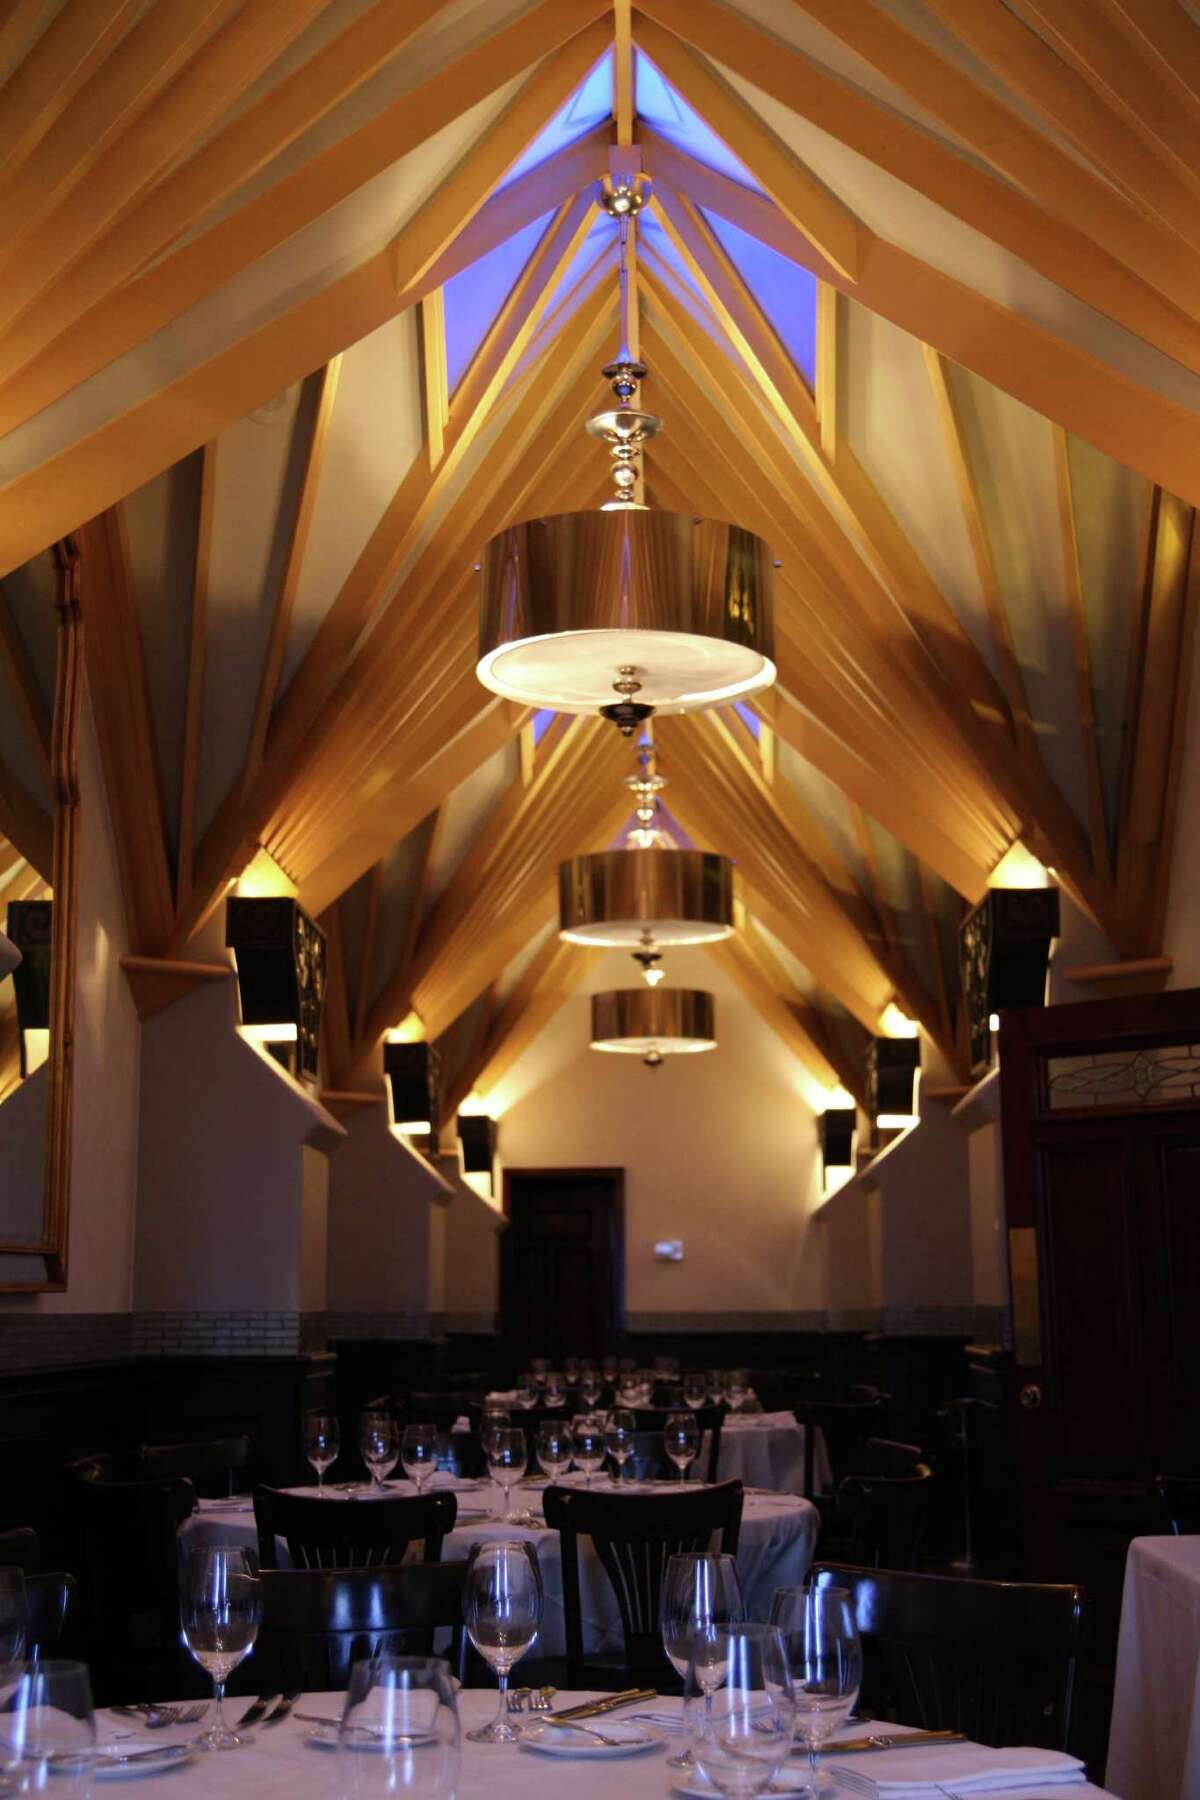 Mark's celebrated ceiling, with its graceful vaulting that was lit to look golden and glowing at night, could possibly become a grid installation that would allow changes to the look, said One Fifth's Floyd.